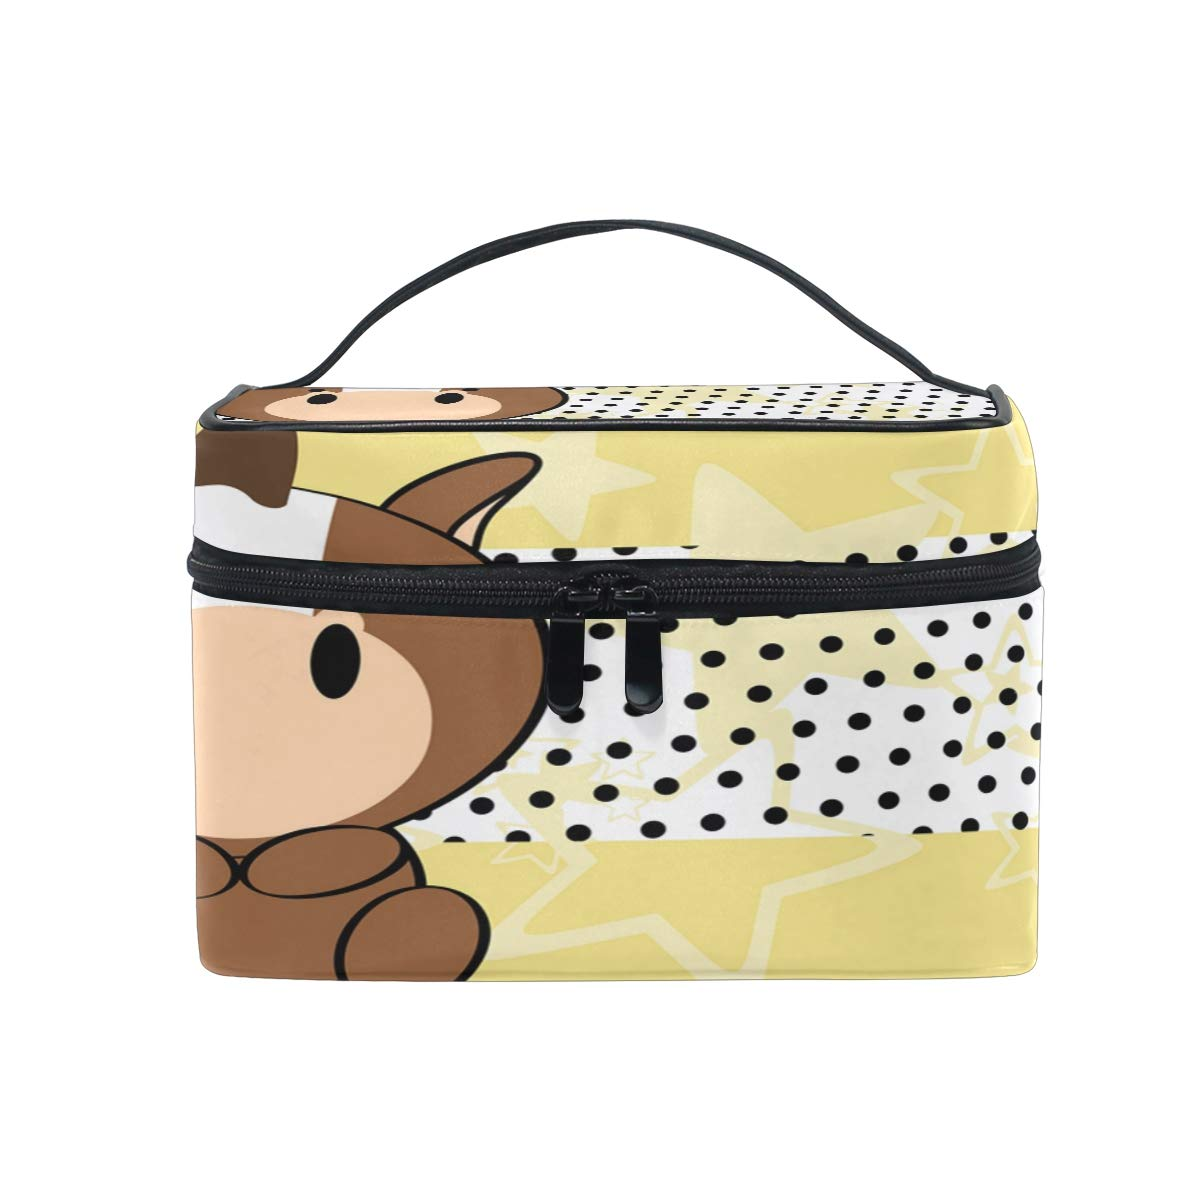 Cosmetic Bag Cute Baby Horse Makeup Bag Travel Toiletry Bag Cosmetic Train Case Make-Up Tote Organizer Box Storage With Mesh Bag Brush Holder for Women Kids Girls Men